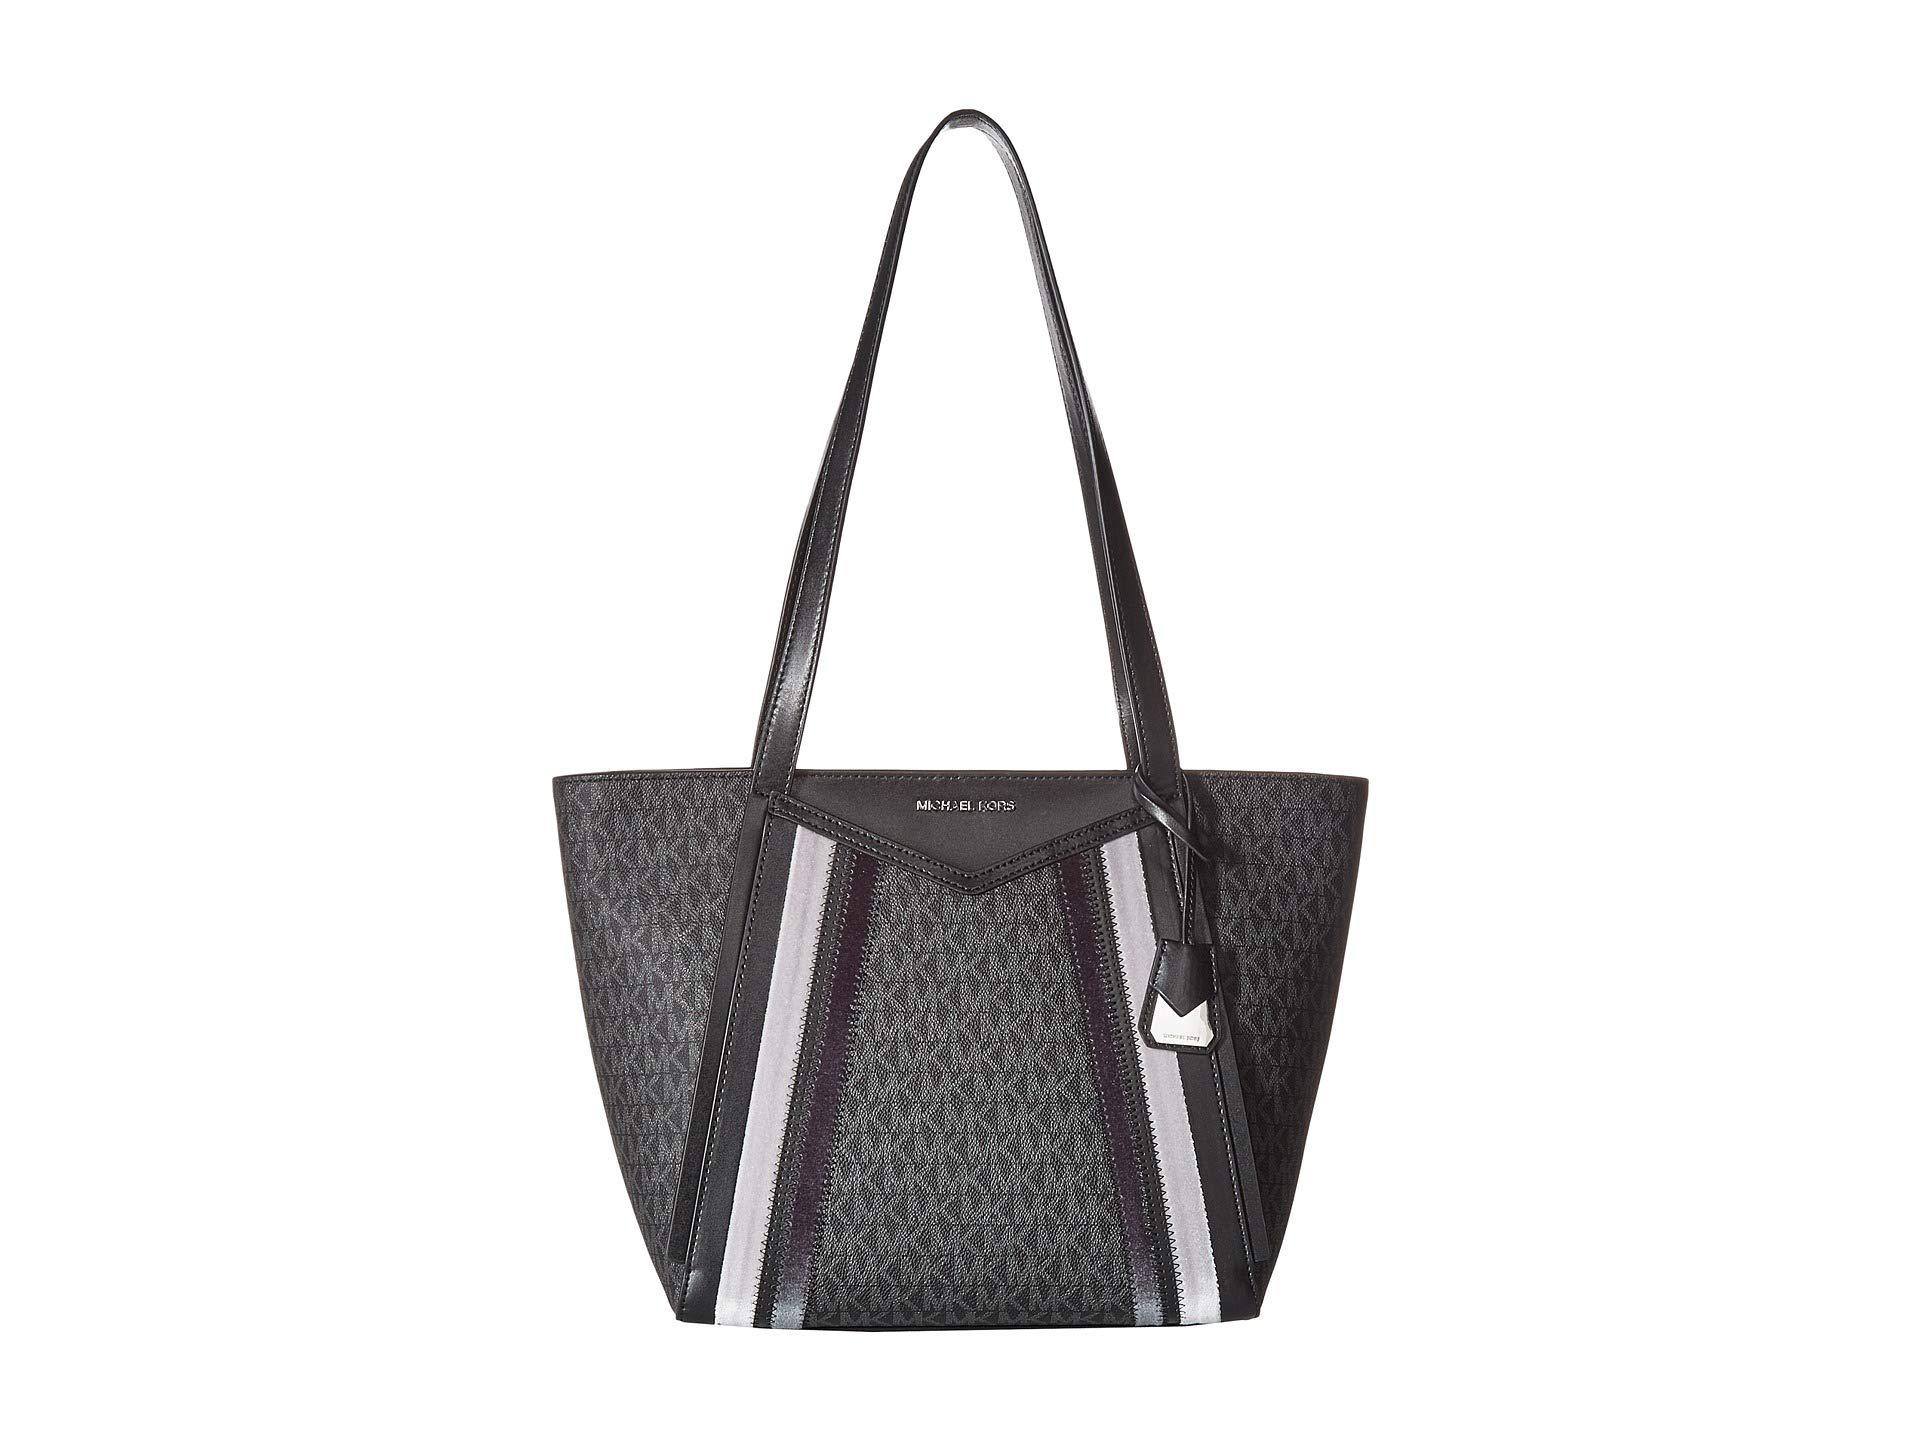 71f61ff27f Lyst - MICHAEL Michael Kors Whitney Small Top Zip Tote in Gray ...